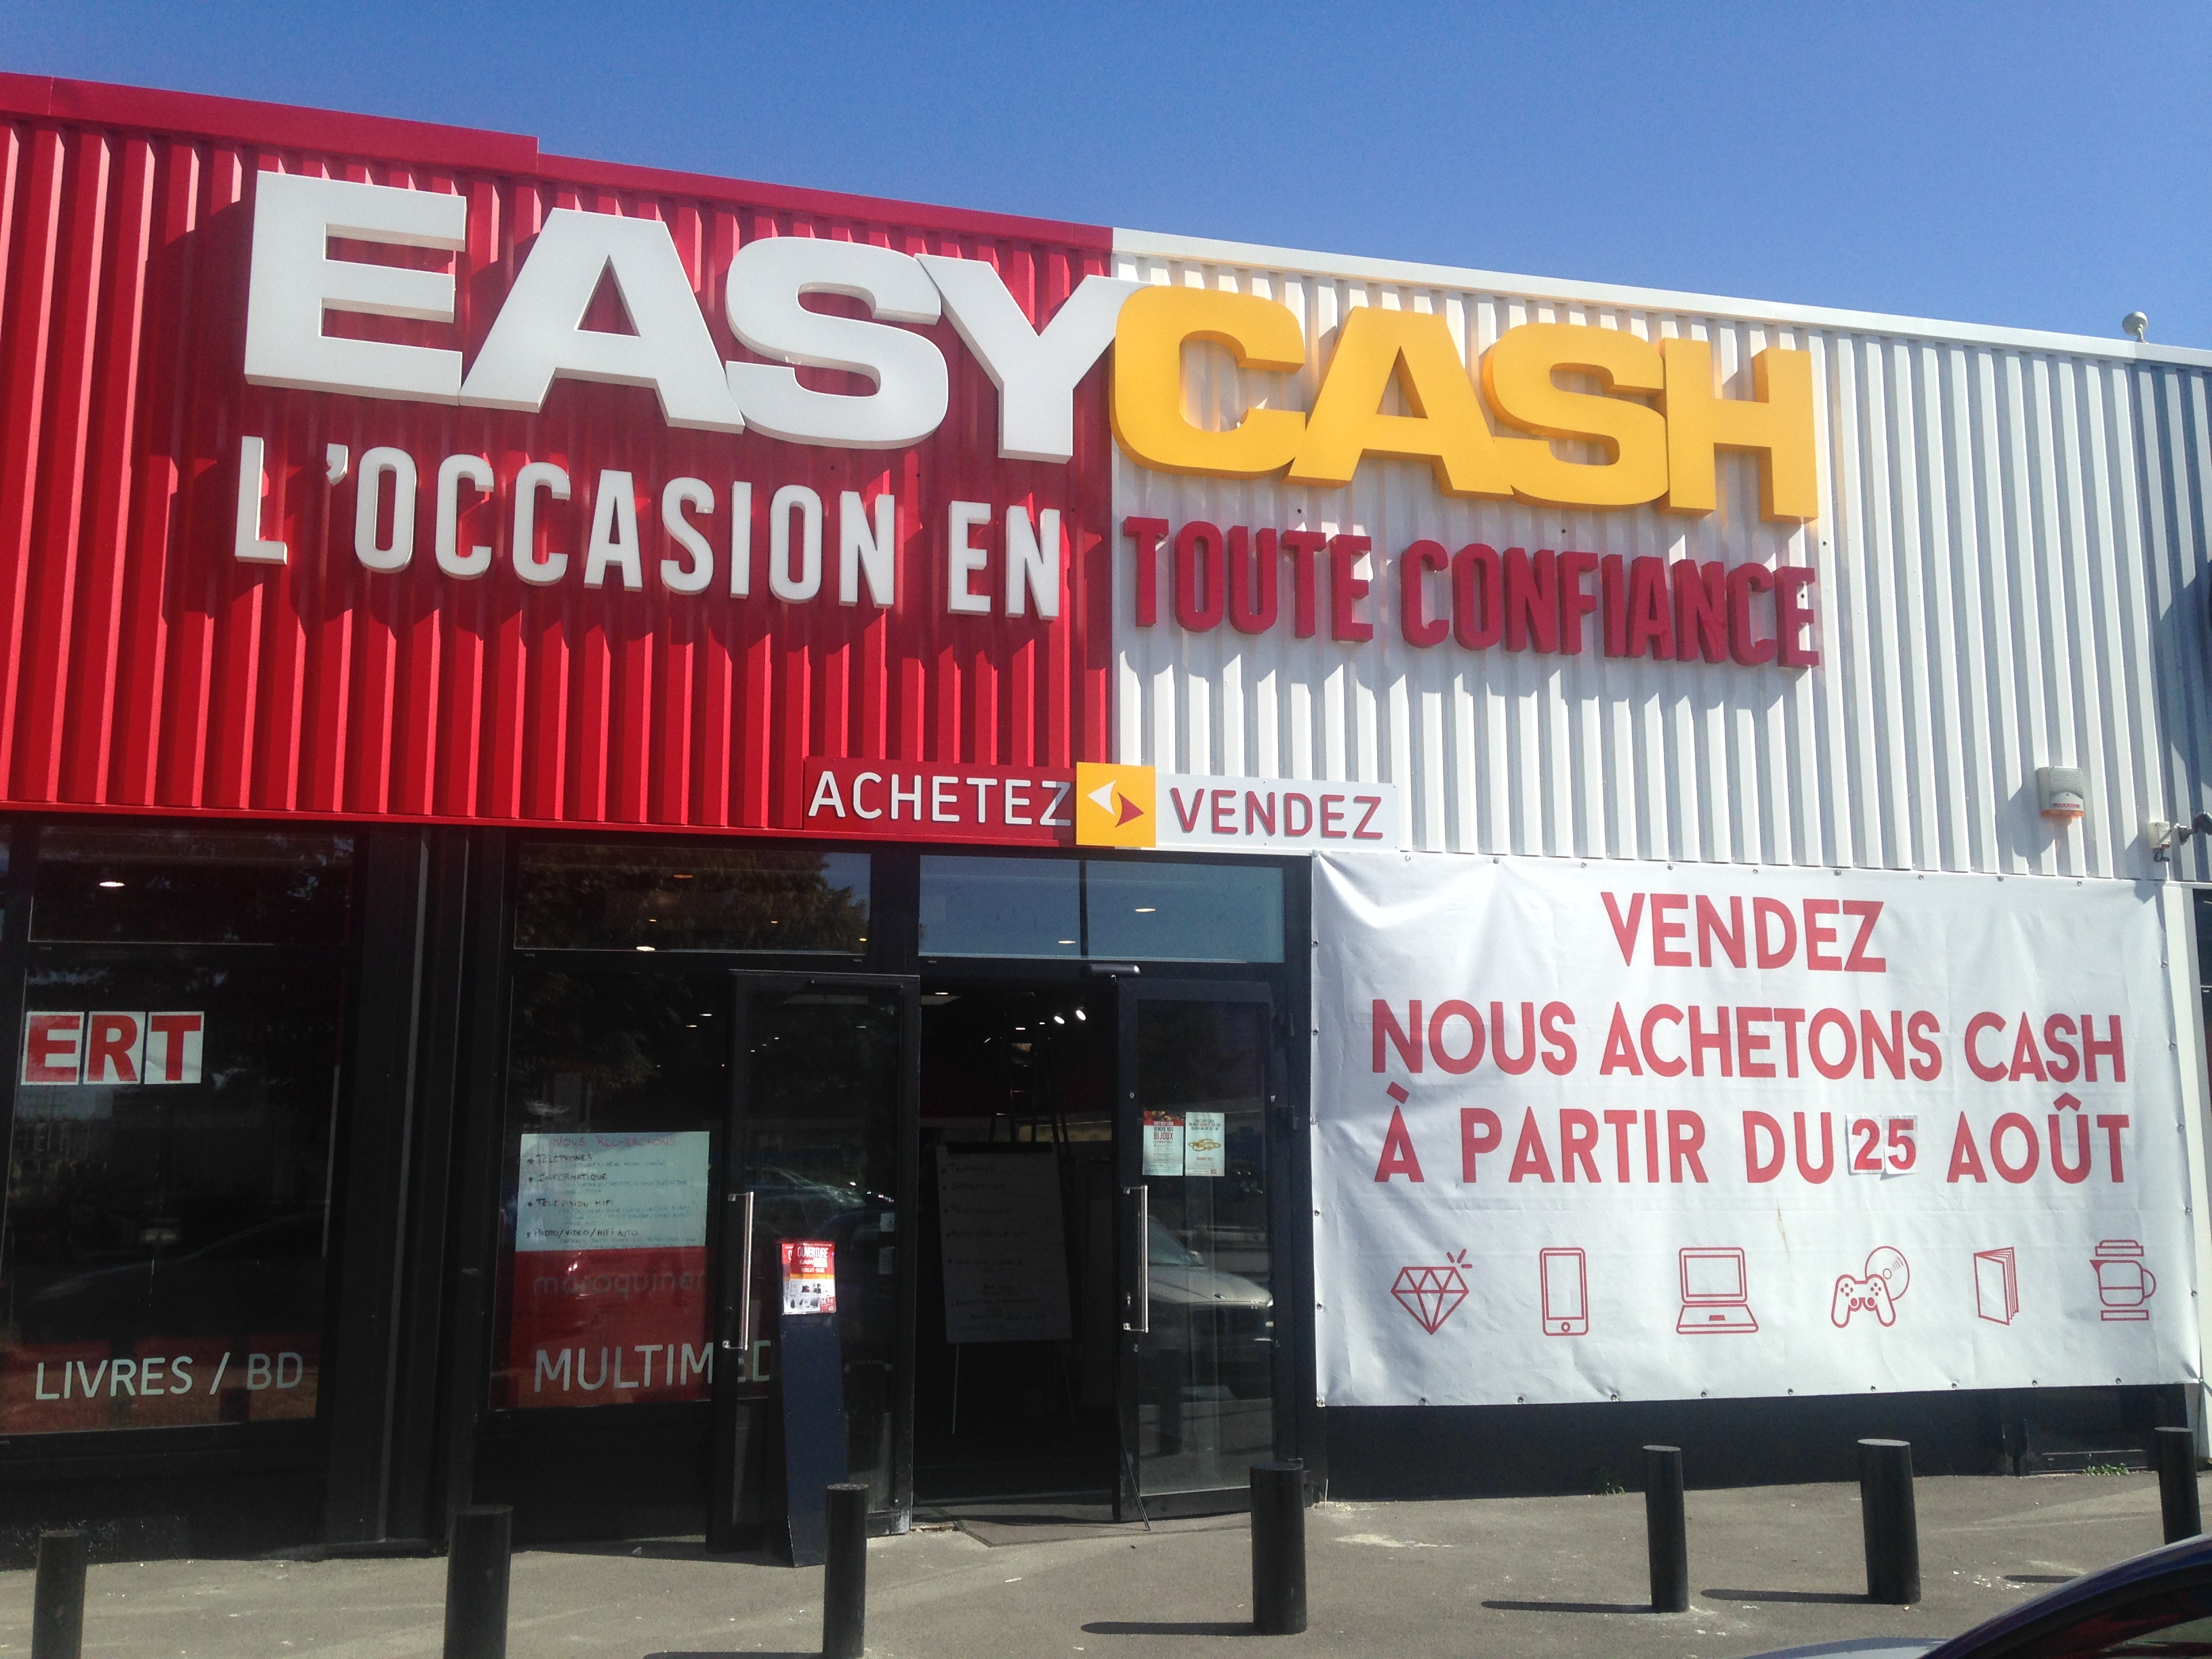 easy cash herblay les occasions easy cash bons plans